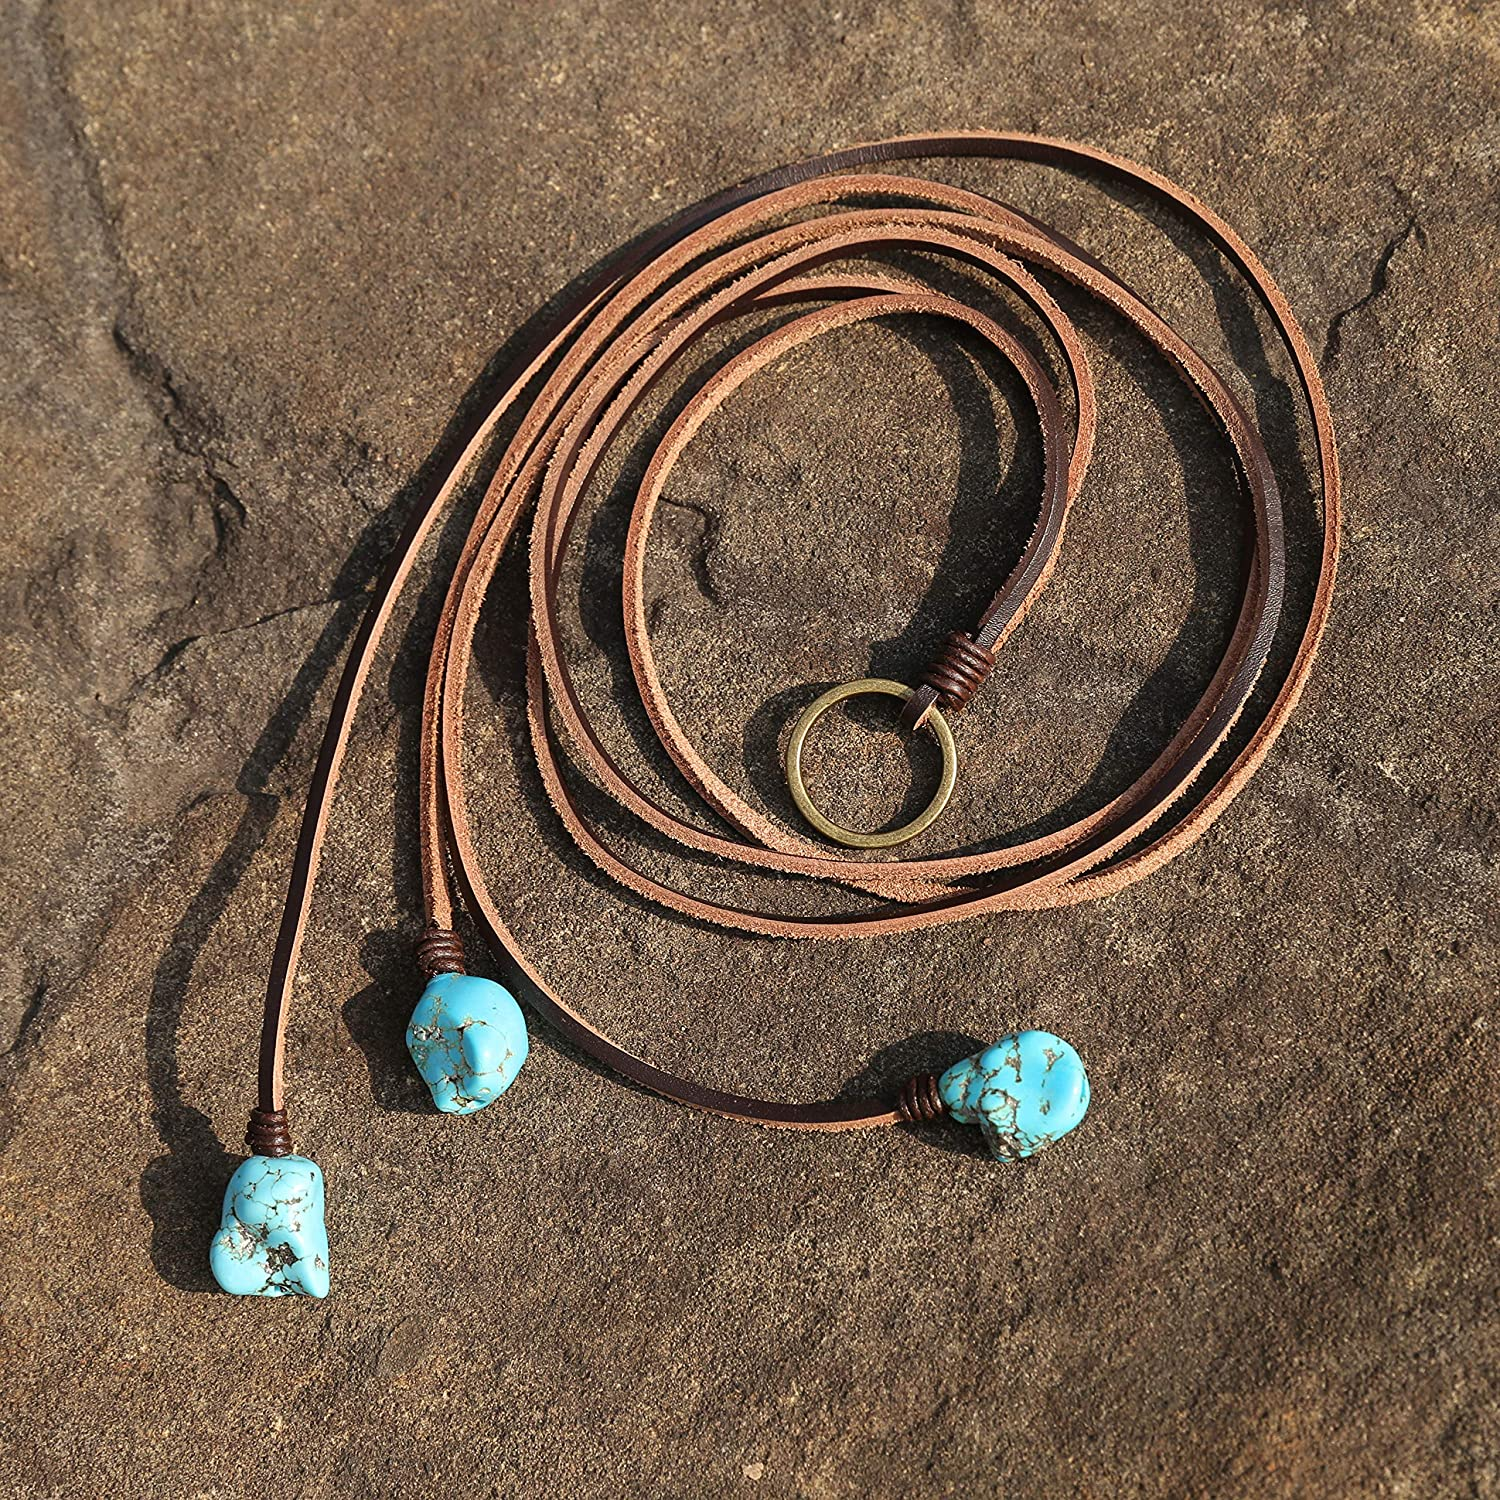 Bohemian Synthetic Turquoise Necklace Handmade Vintage Y-shaped Jewelry with Genuine Flat Brown Leather